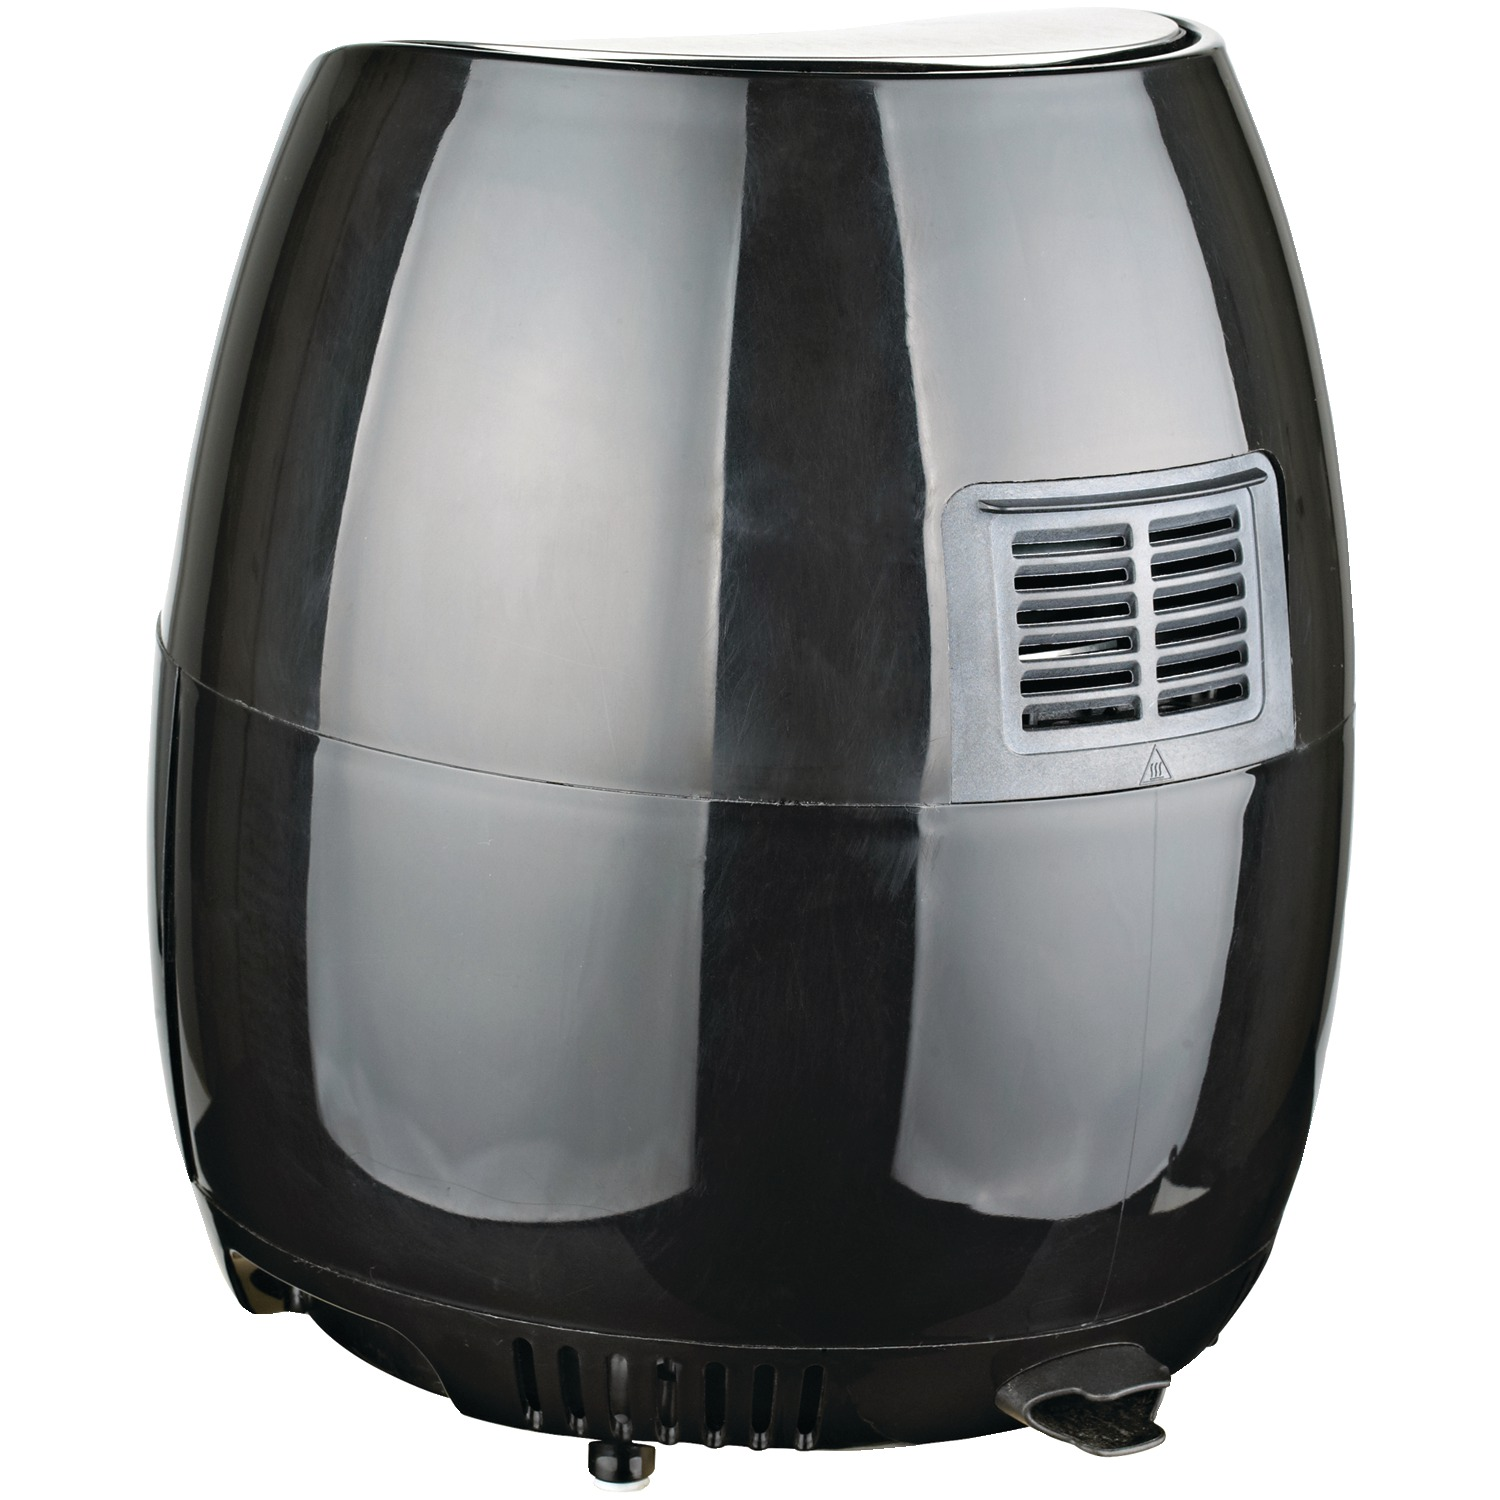 Image for Brentwood 3.4Qt Select Air Fryer from Circuit City